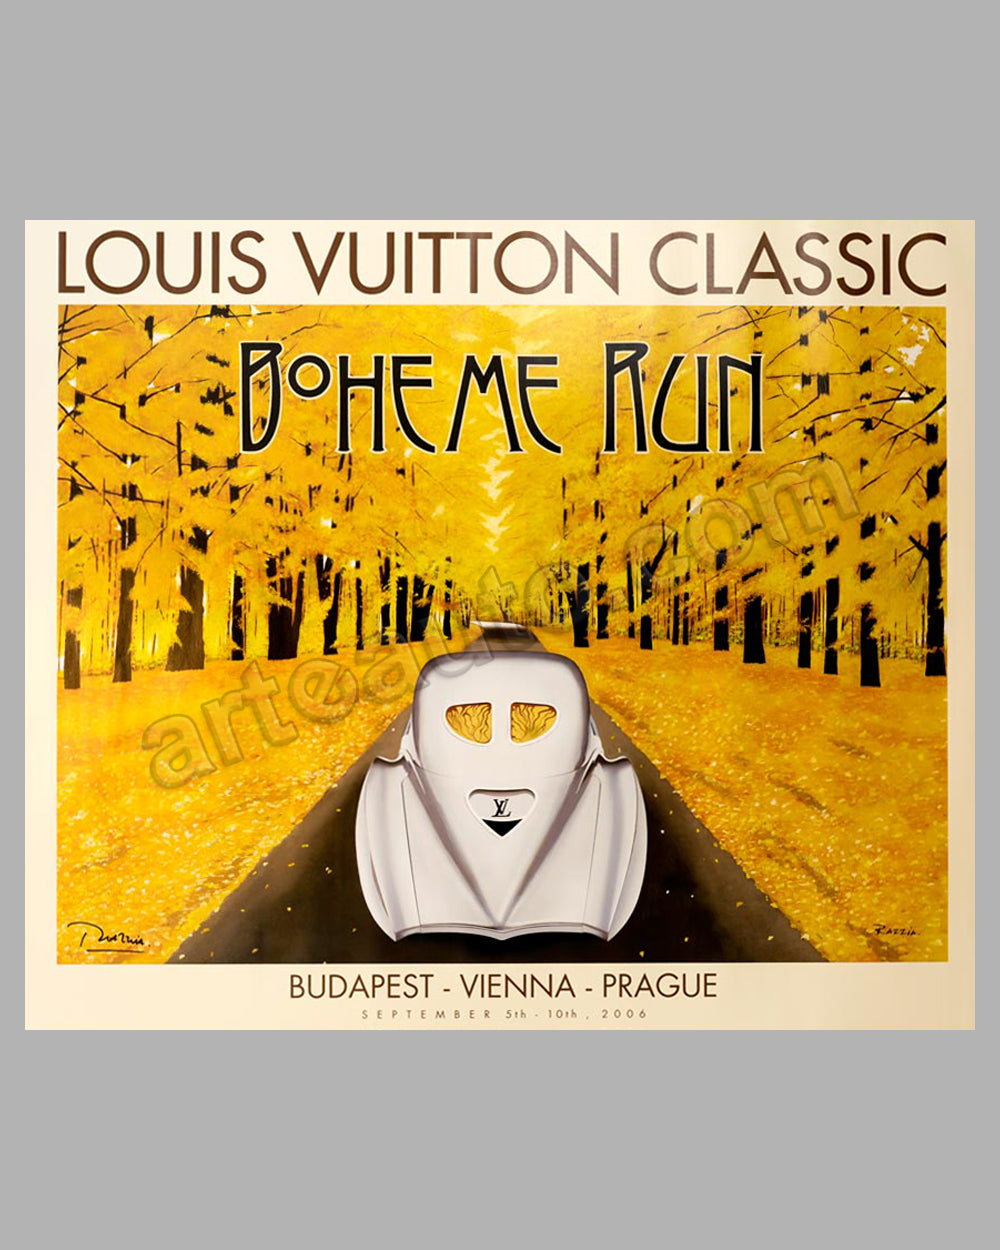 Louis Vuitton Classic 2006 Boheme Run original poster by Razzia